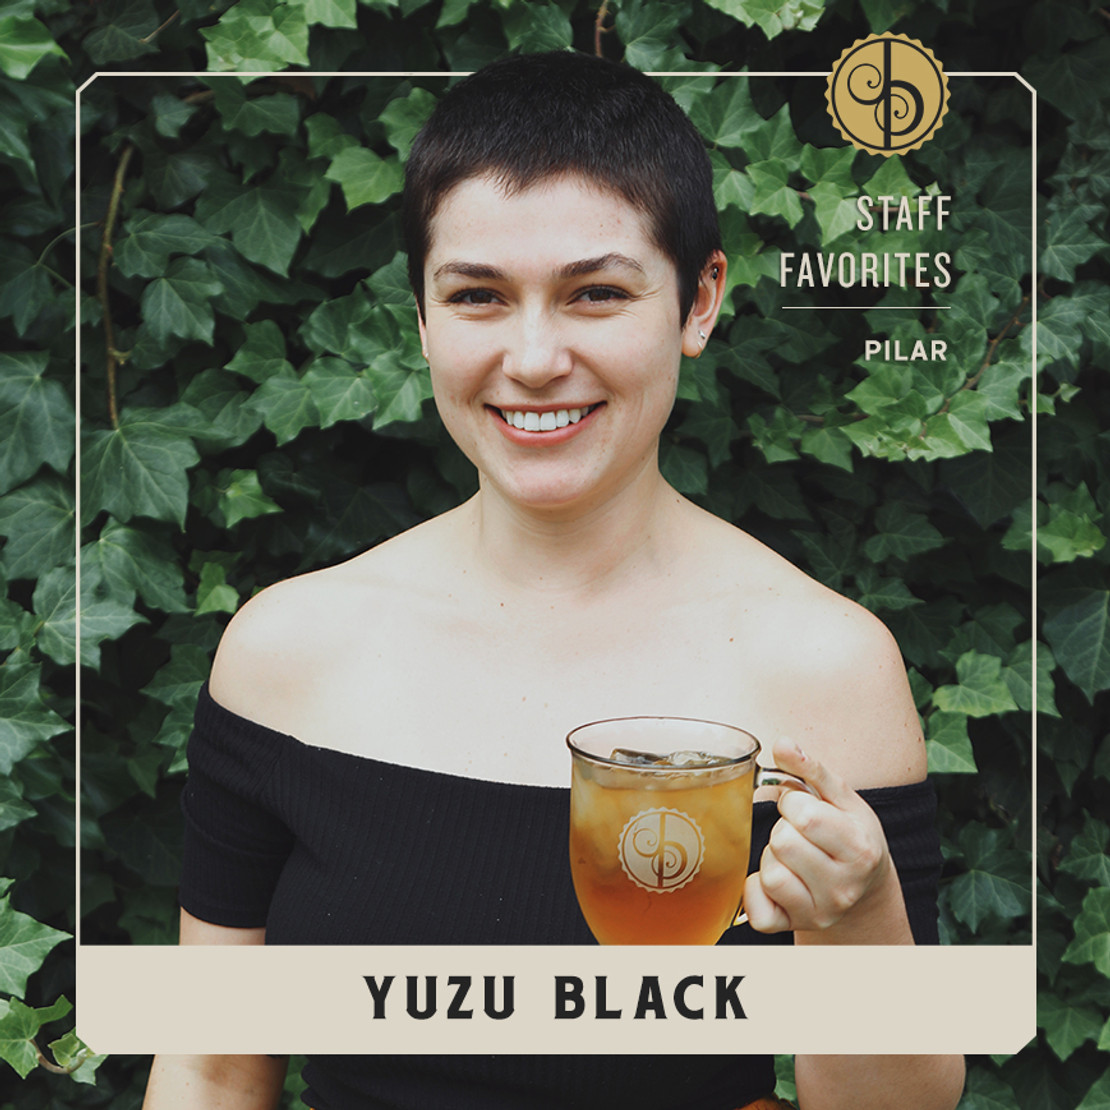 Staff Favorites: Pilar & Yuzu Black